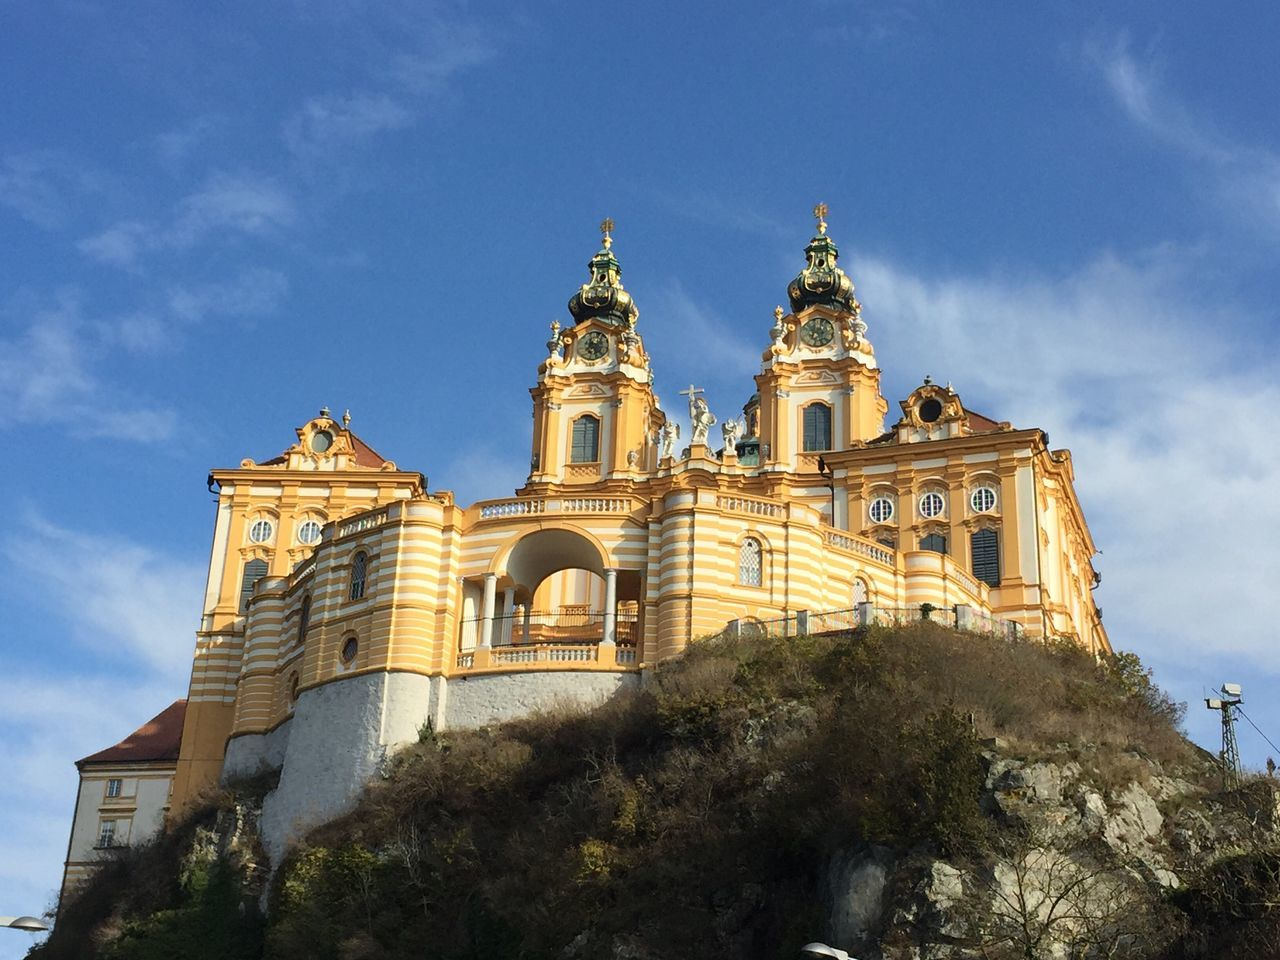 Stift Melk Melk Architecture Sky Nofilter No People Outdoors Spirituality Travel Destinations Day Cultures Beautiful ♥ Beautiful Travel